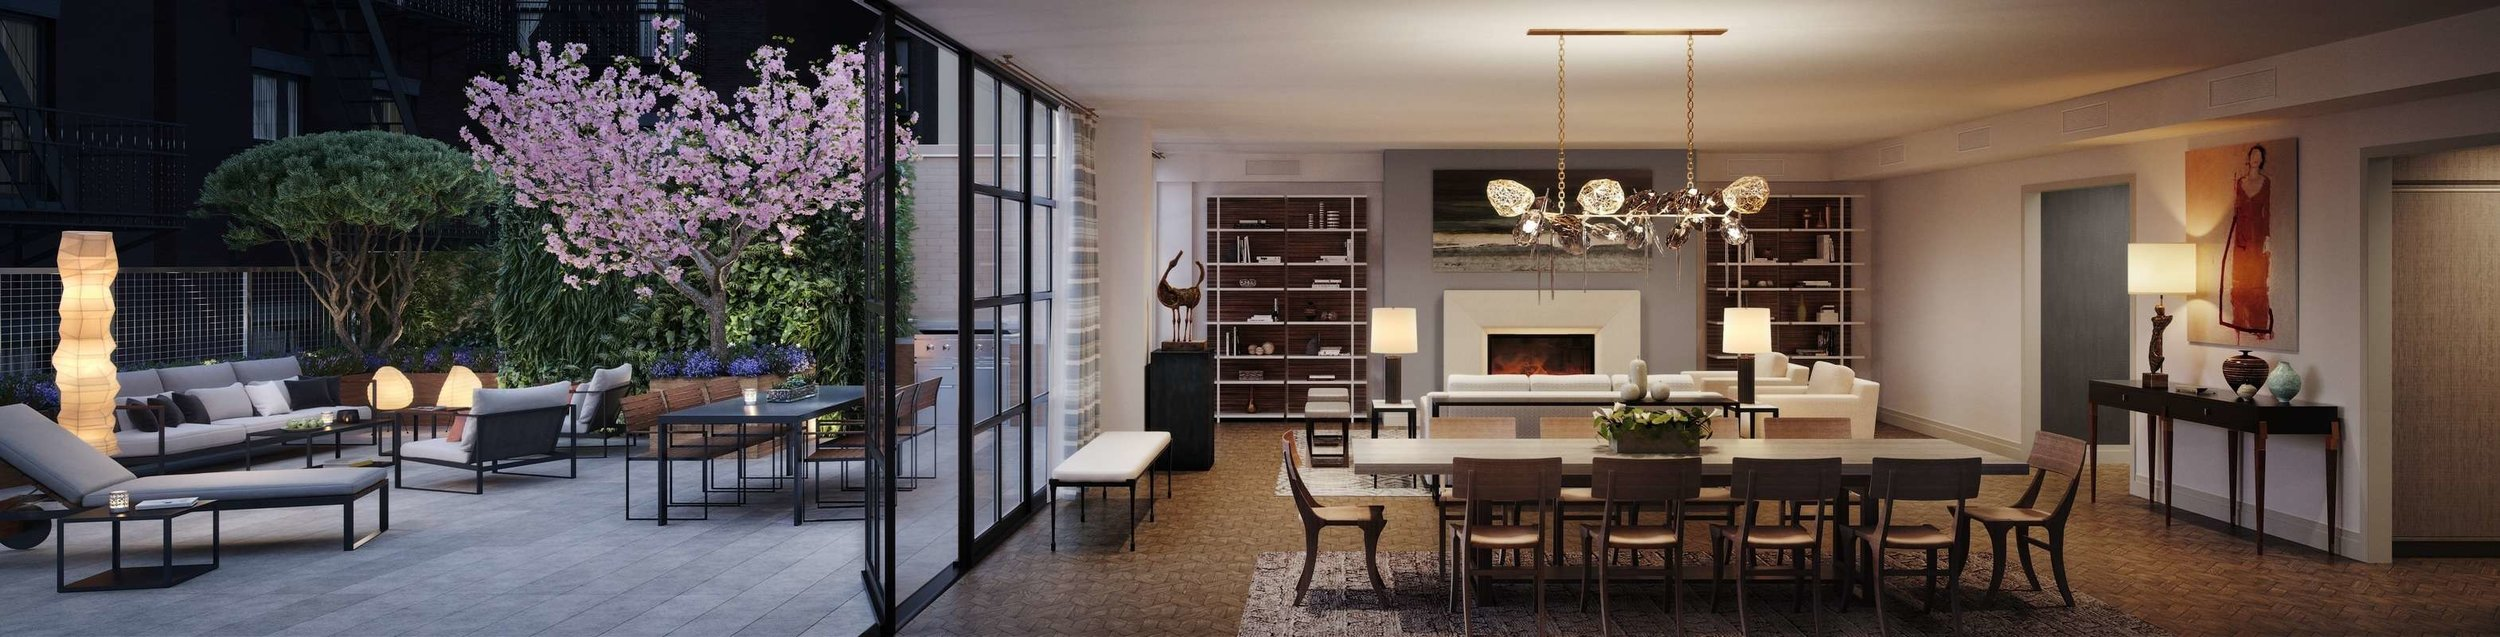 207 W 79 - Living room with terrace.jpg